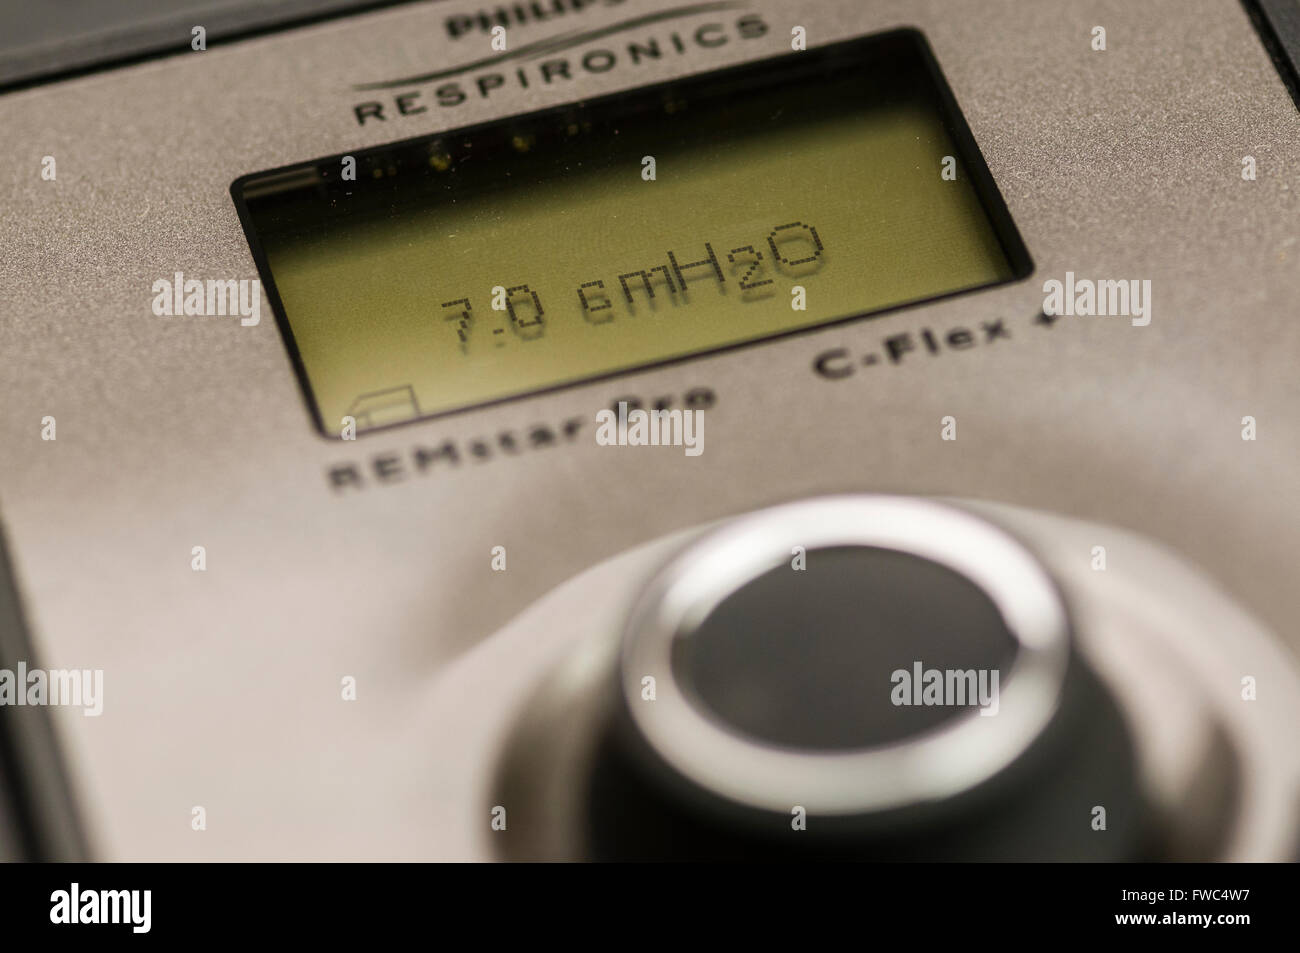 Philips Respironics System One CPAP machine set to an air pressure of 7.0 cm H2O (LED backlight not illuminted) - Stock Image